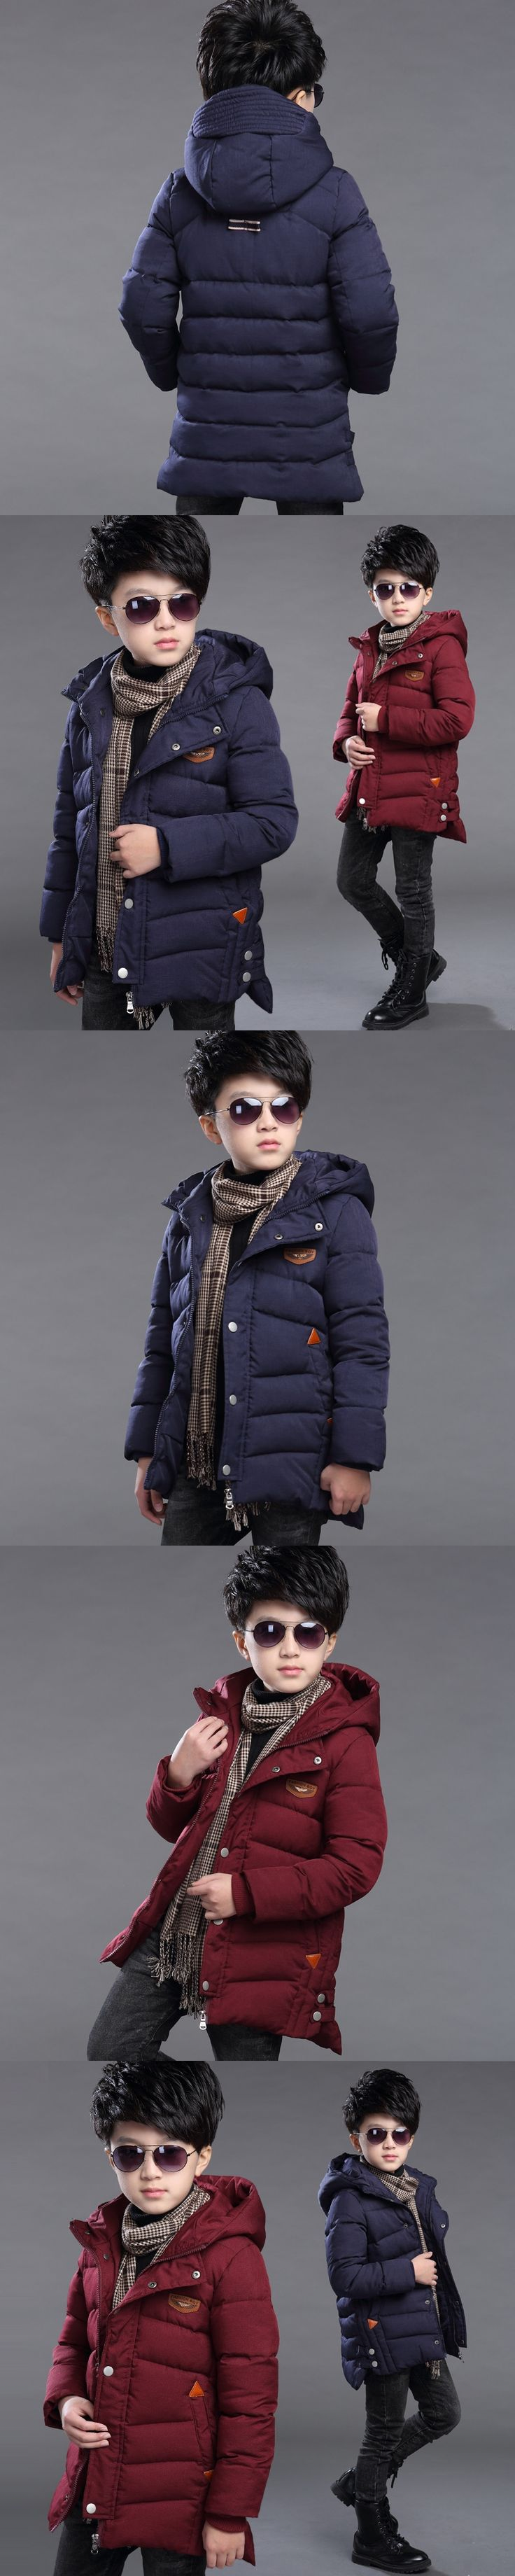 Boys Winter coat 2017 New Winter Boy's Warm wadded Jackets children Coat thick cotton-padded jacket Kid jacket Outerwears Hooded